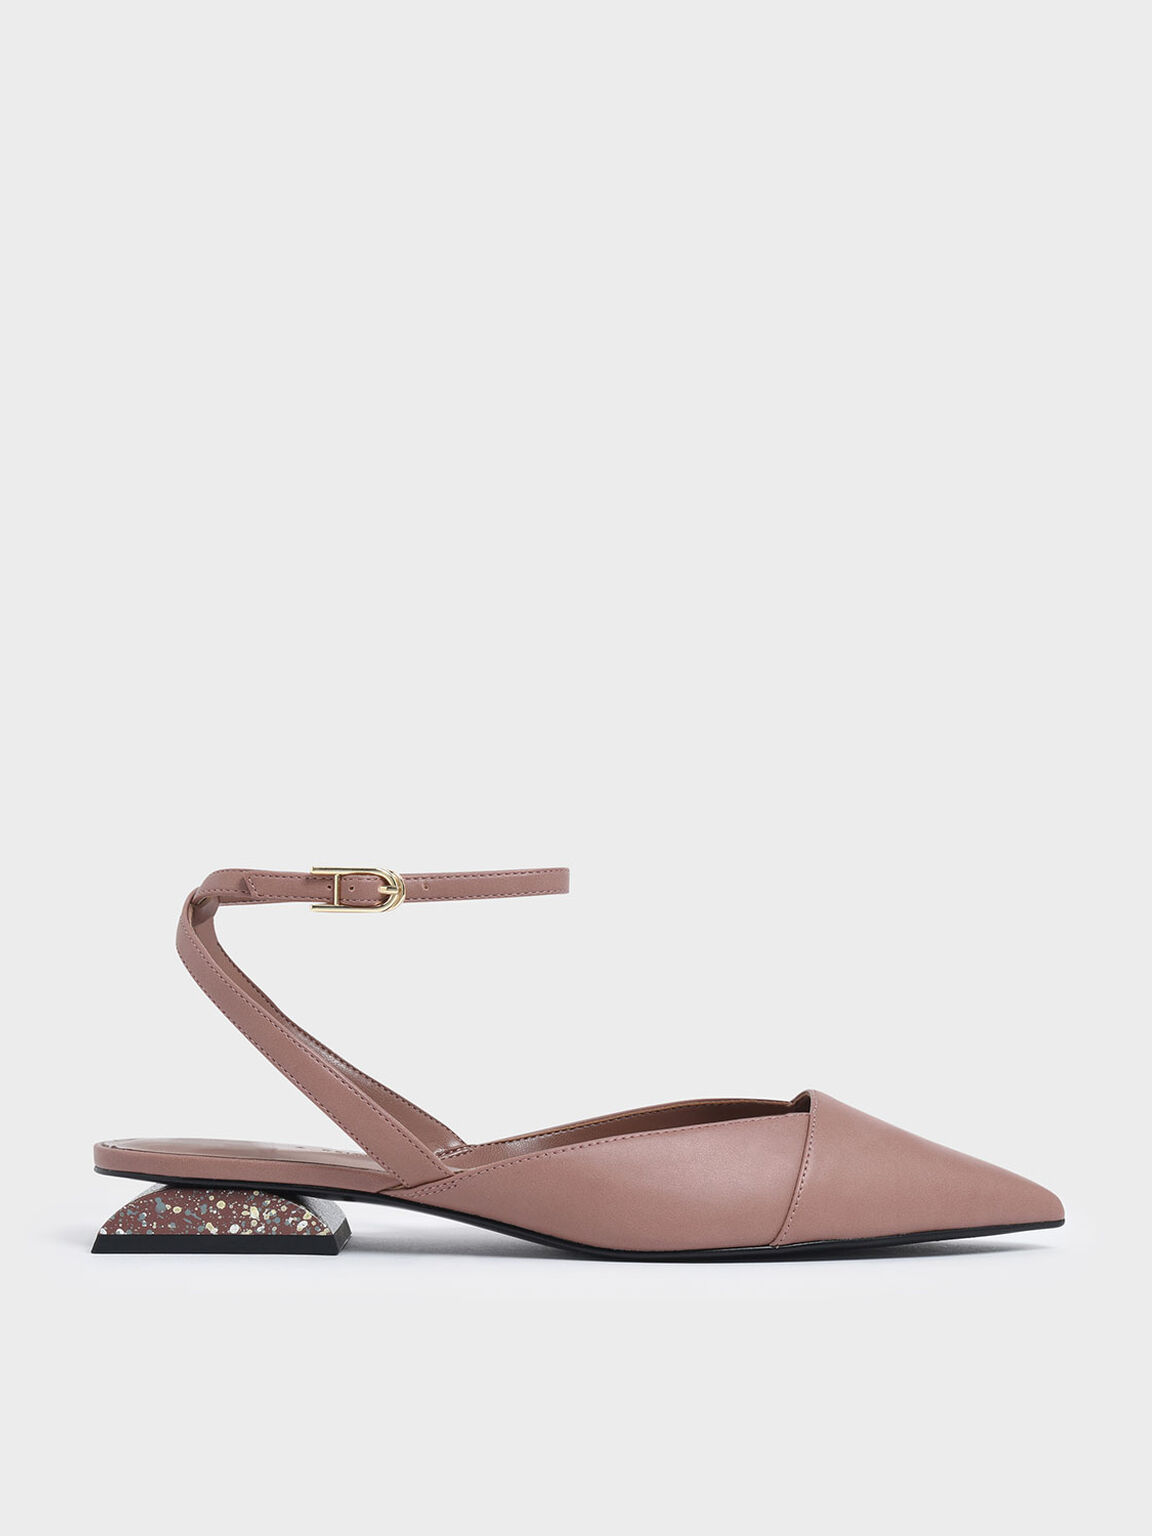 Terrazzo Print Sculptural Heel Covered Sandals, Pink, hi-res